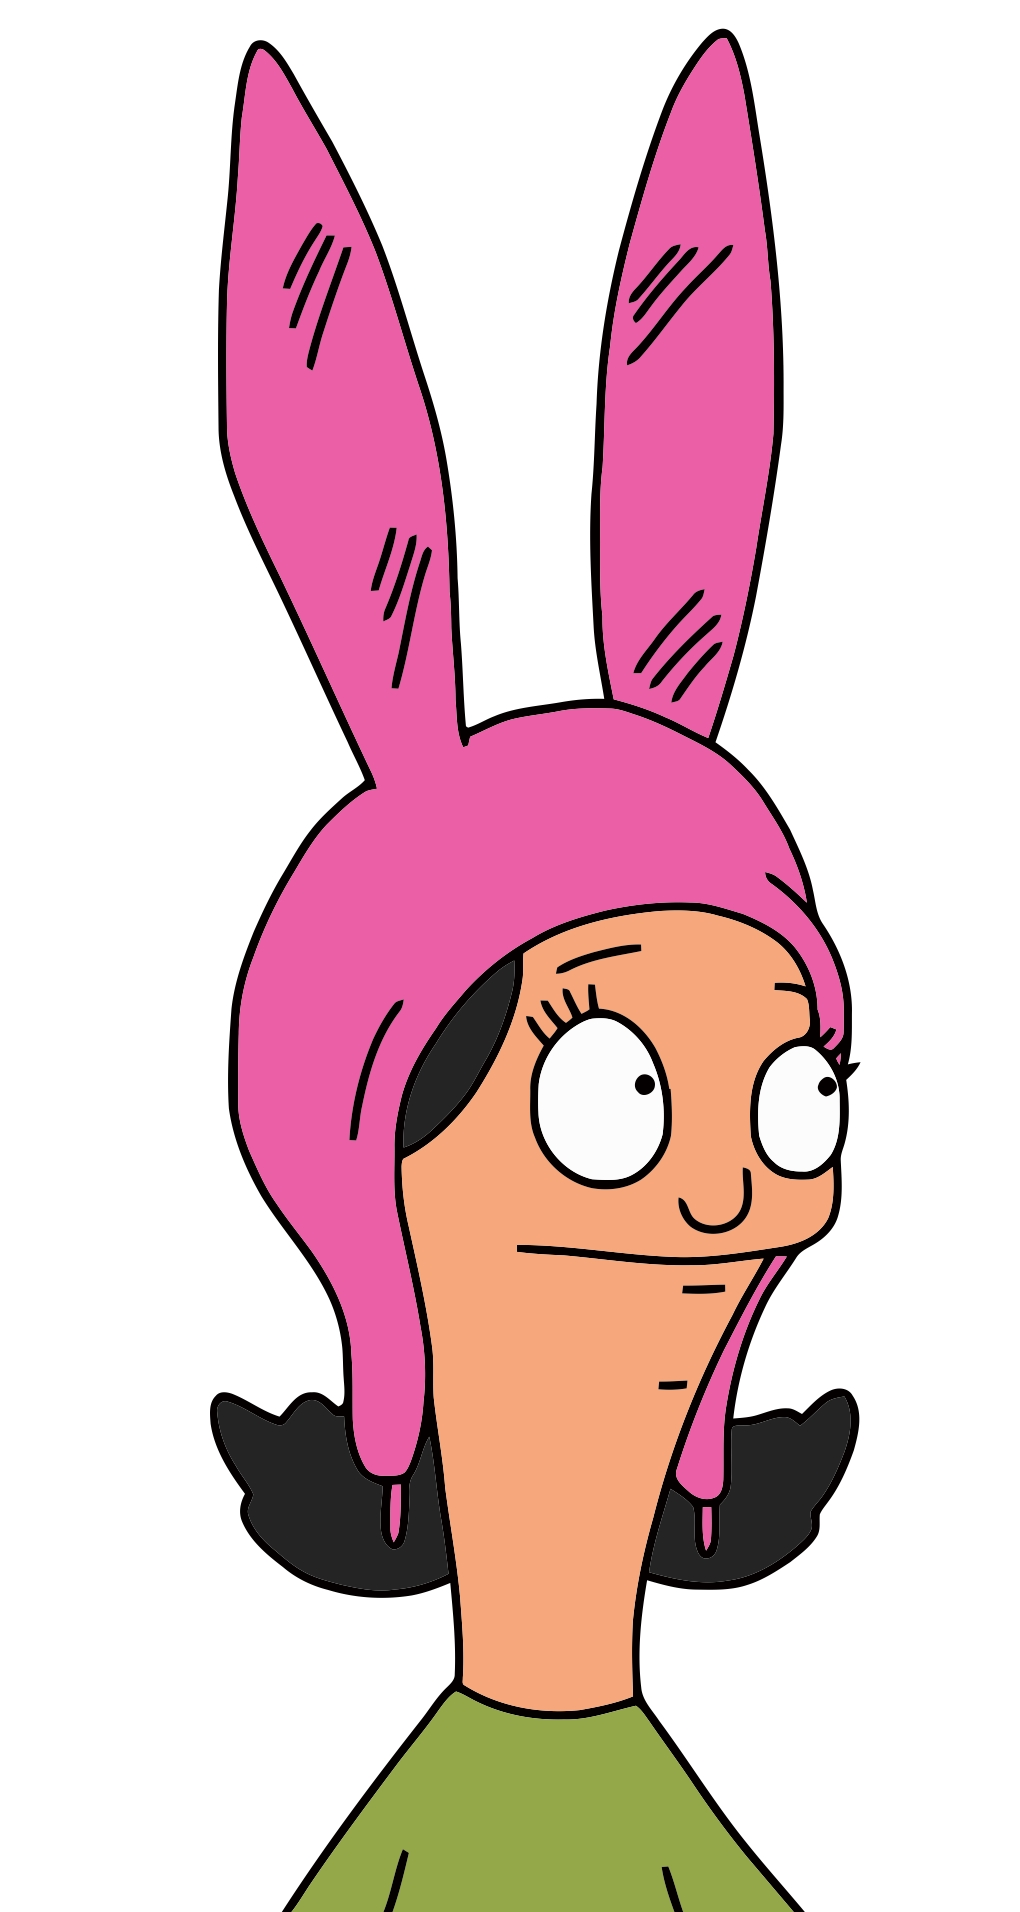 image louise 5 jpg bob s burgers wiki fandom powered by wikia